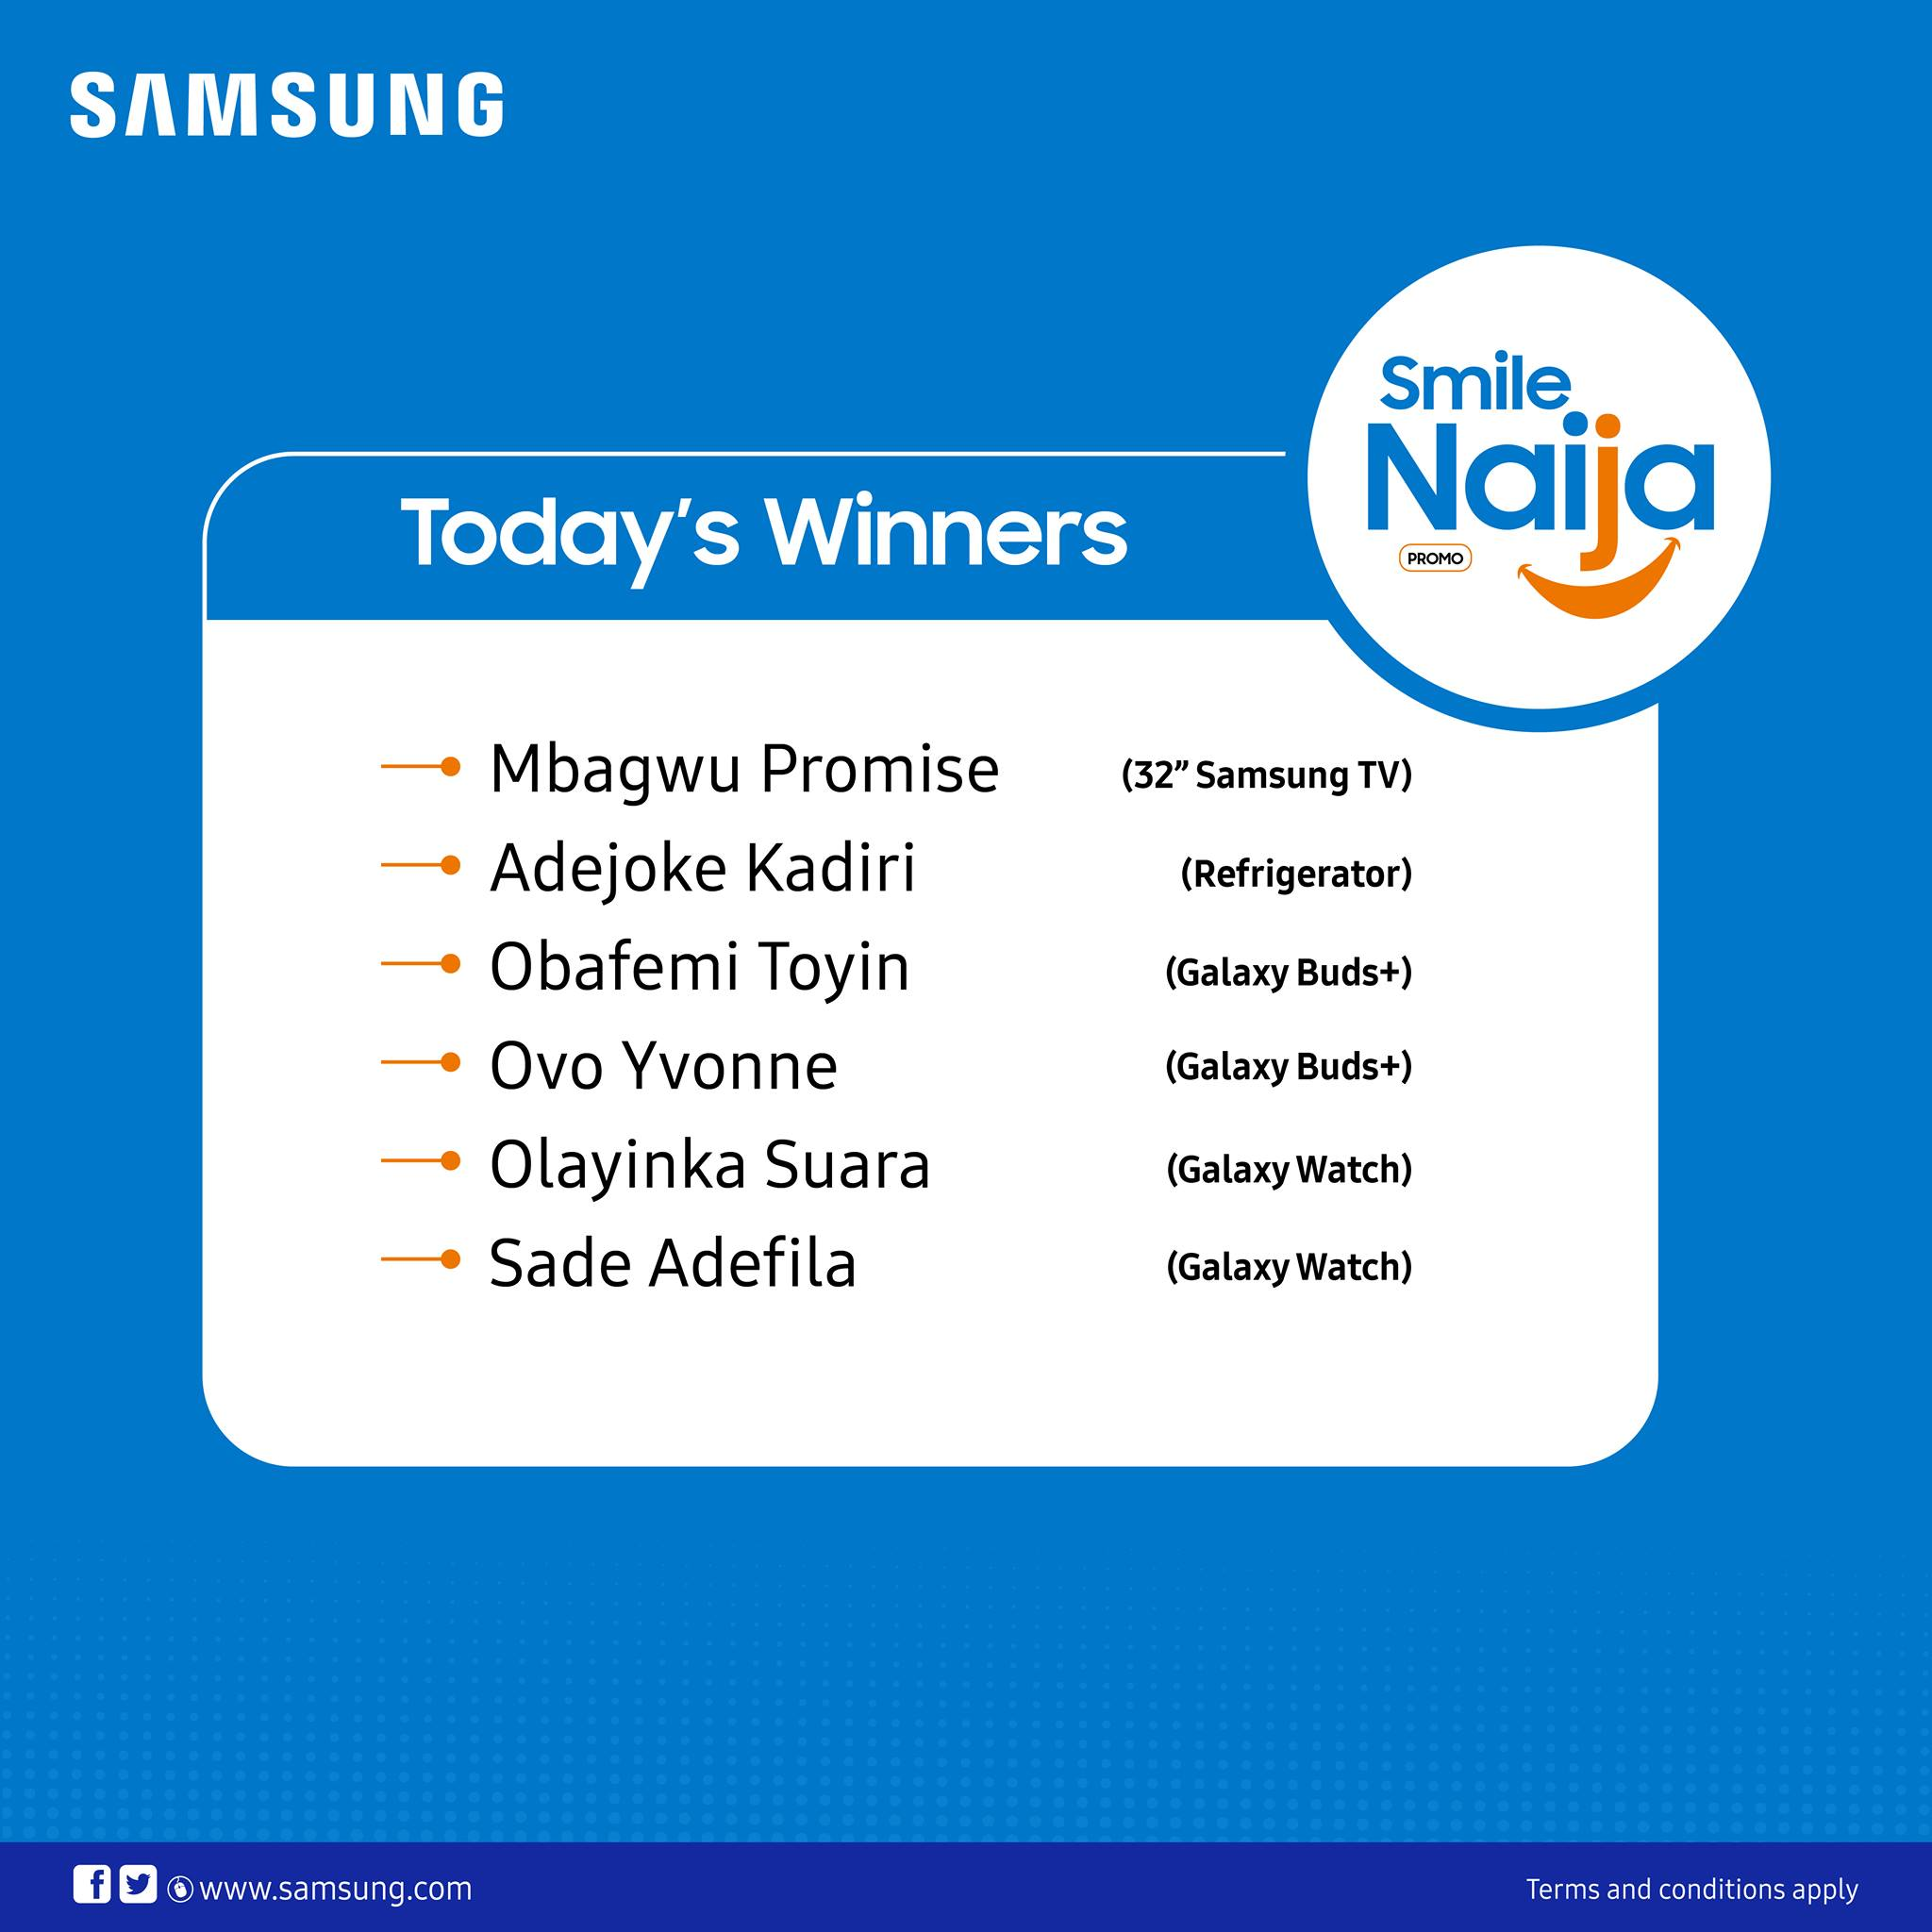 Day 6 Winners of SAMSUNG SMILE NAIJA PROMO Announced.